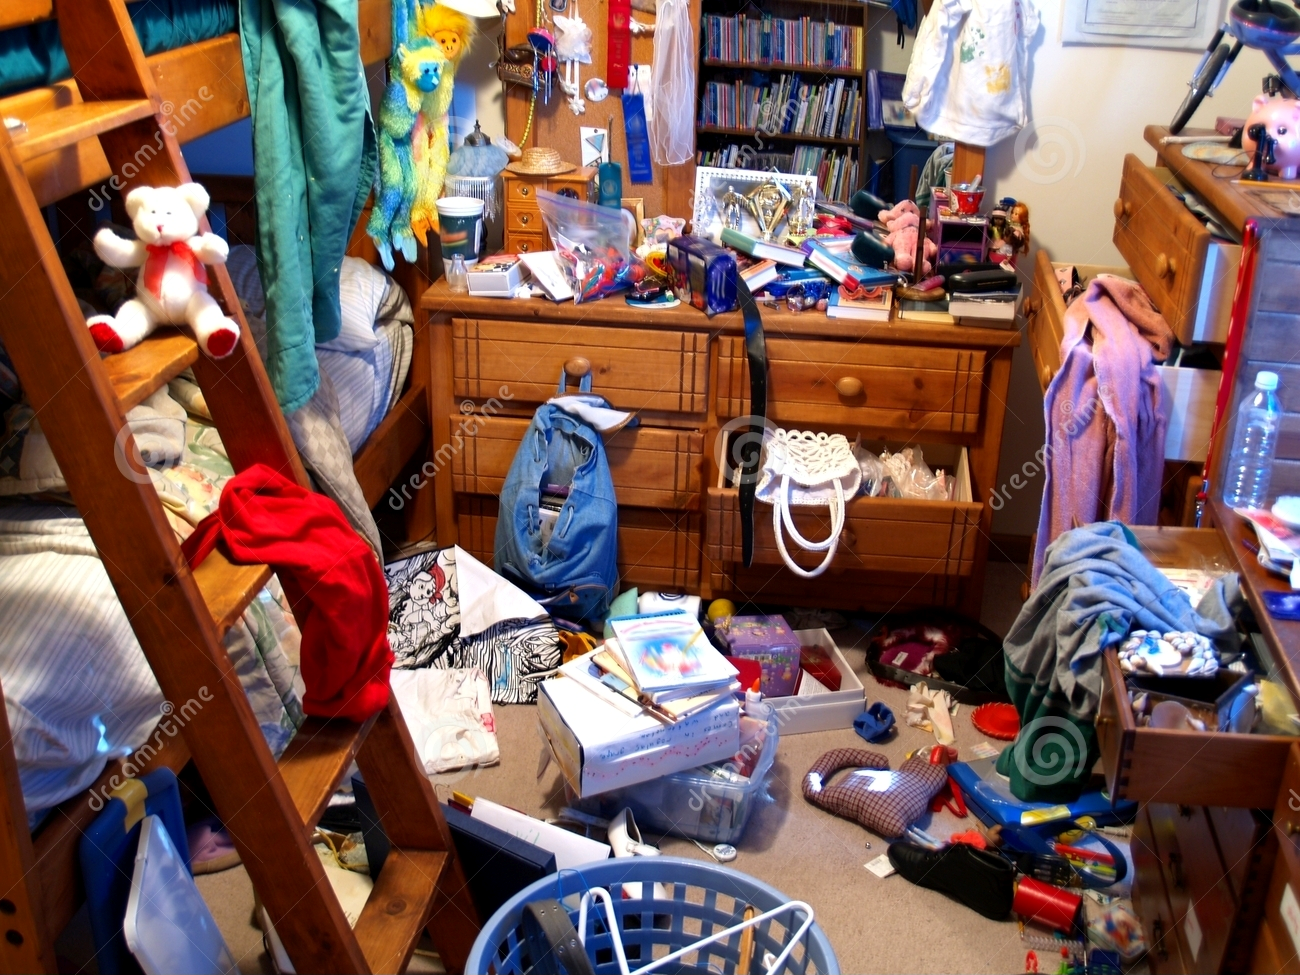 Clutter Trouble Spots: 10 Areas of Focus to Achieve an Organized Home